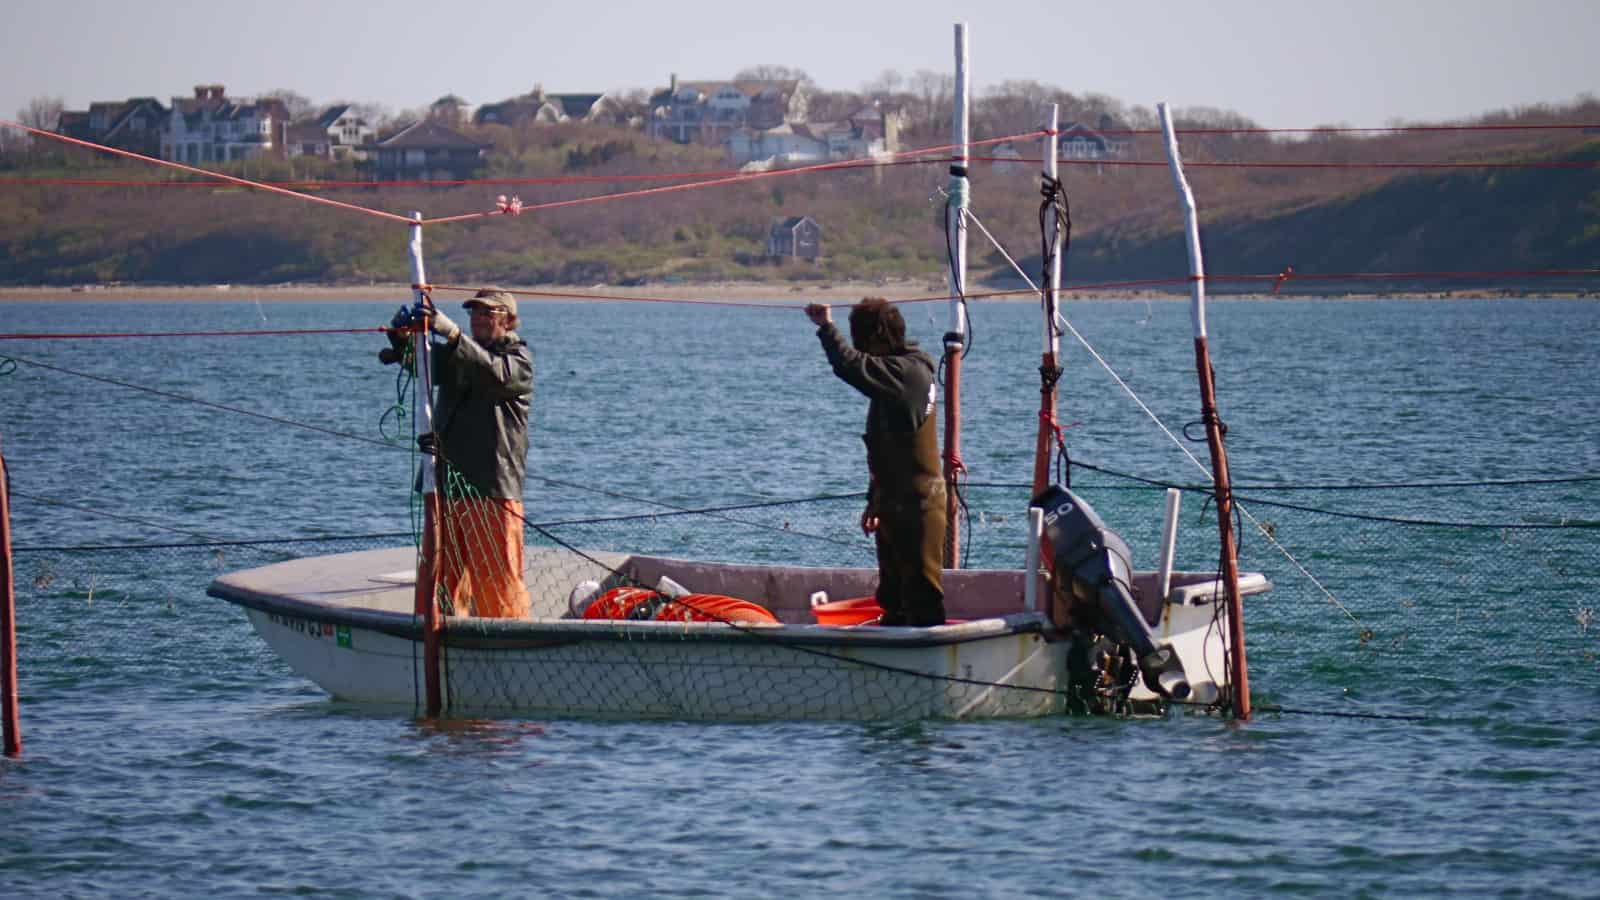 Close-up: Setting up a fishtrap off Navy Beach, Culloden Point in the background, Montauk NY, photo by Sailing Montauk